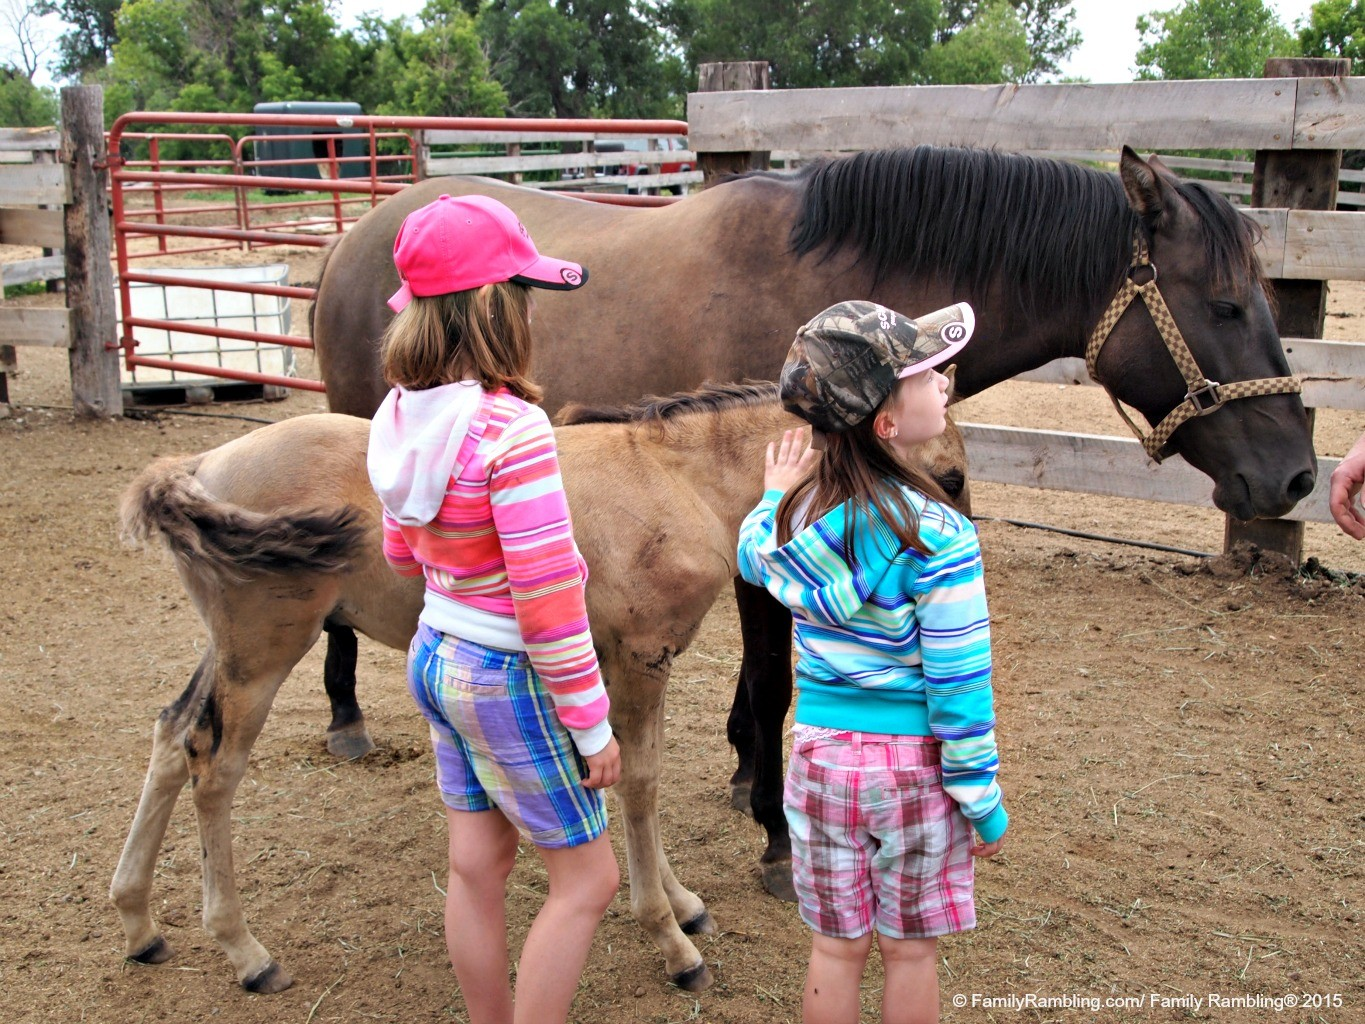 Awesome Animal Adventures for Families